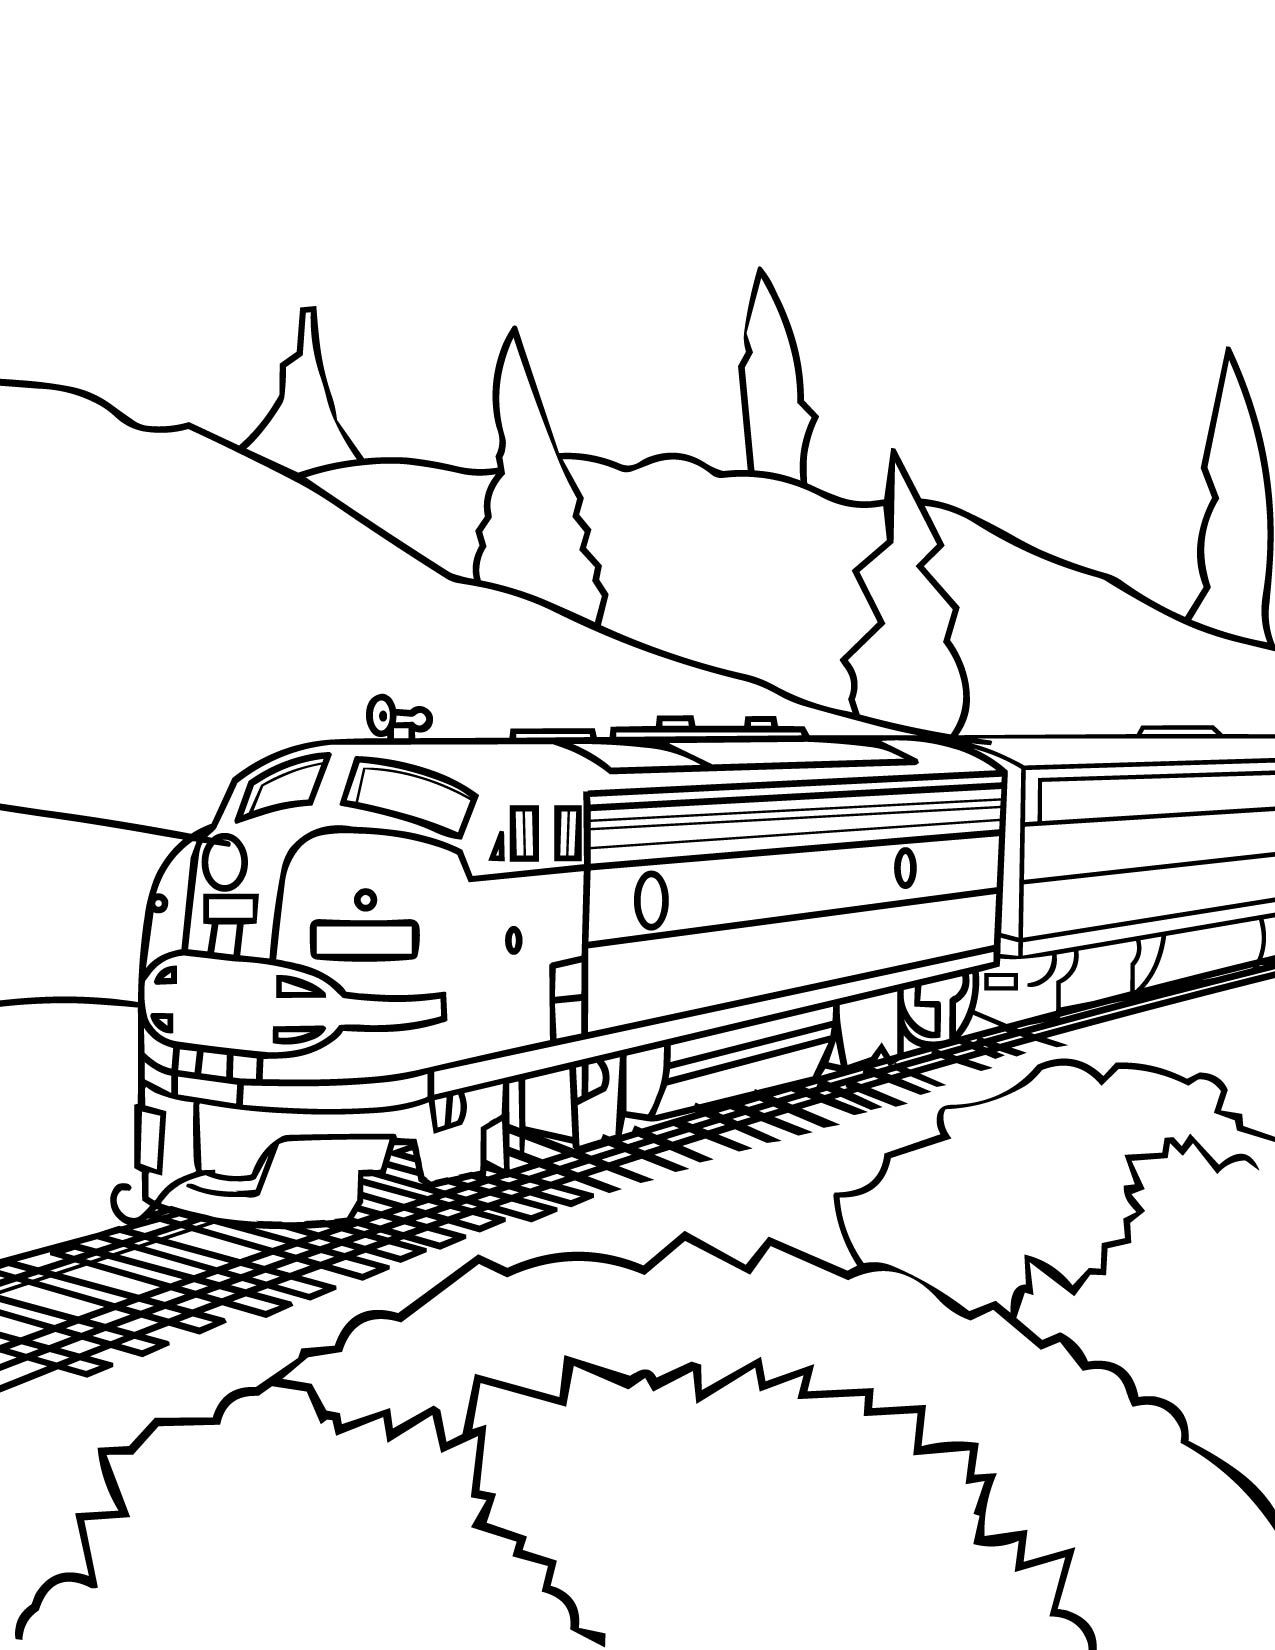 Coloring Pages Of Trains And Cabooses